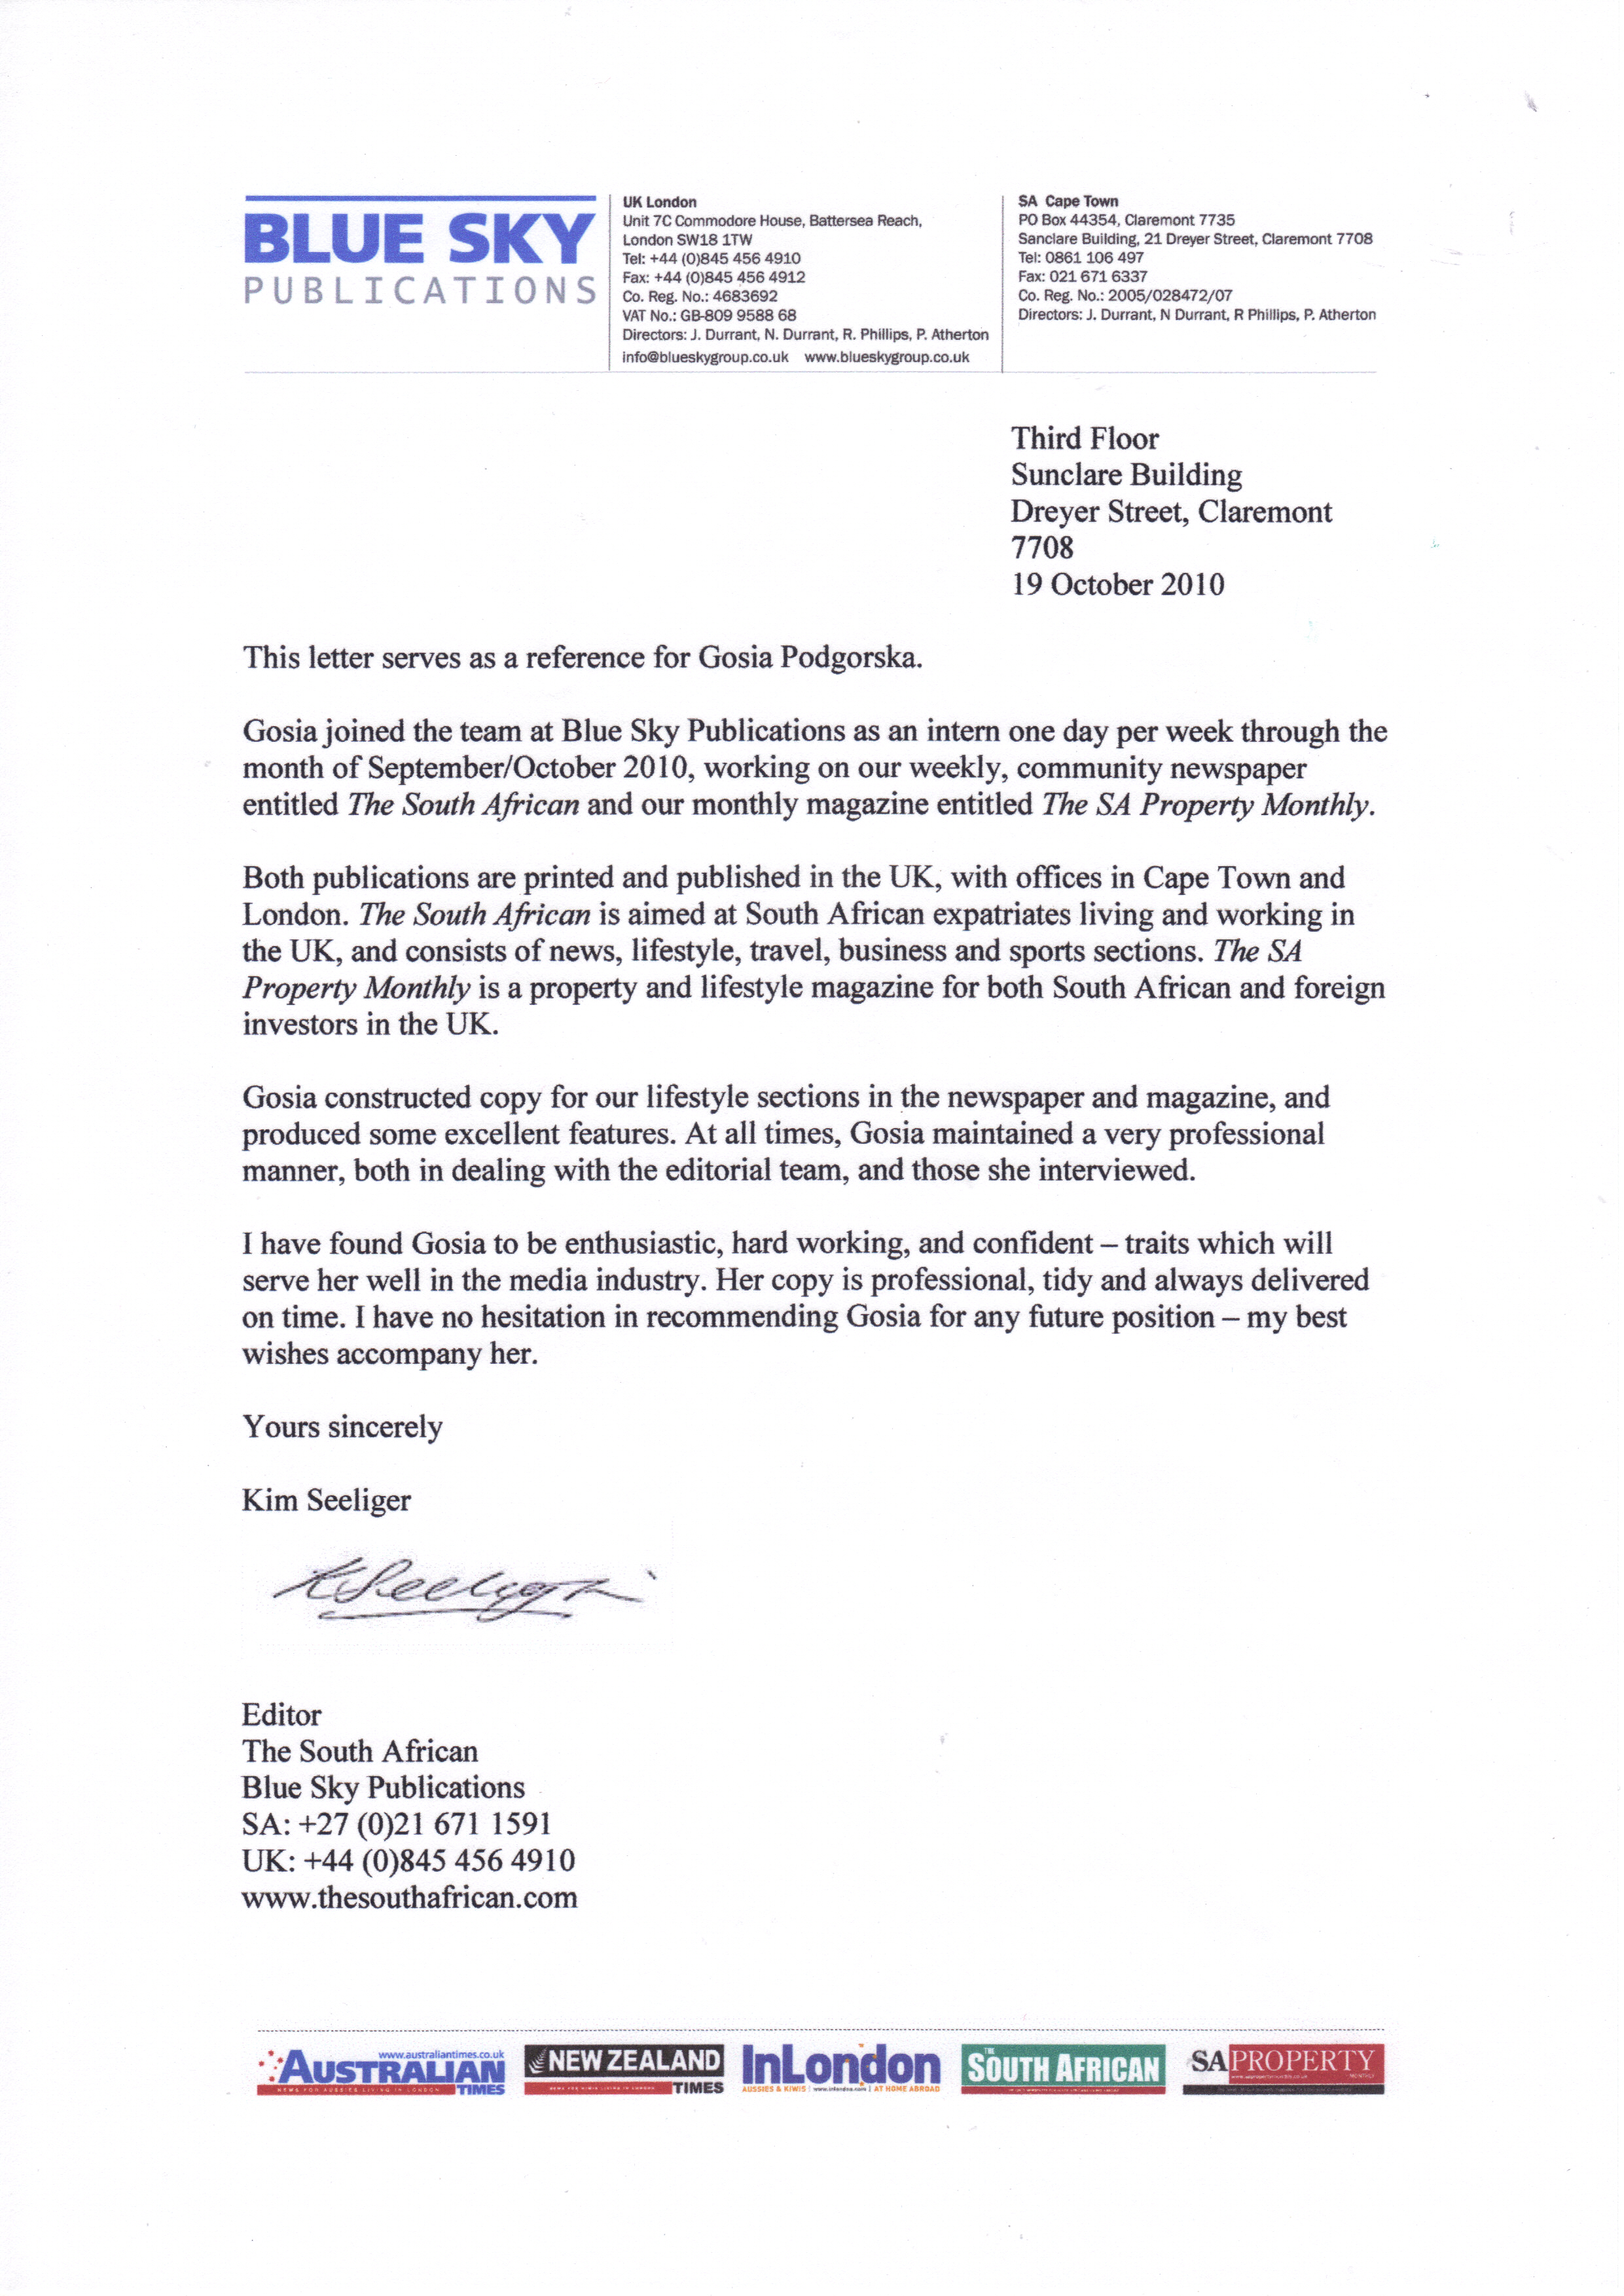 Sample Letter Asking For Tution Assistance From Employer 301 Moved Permanently